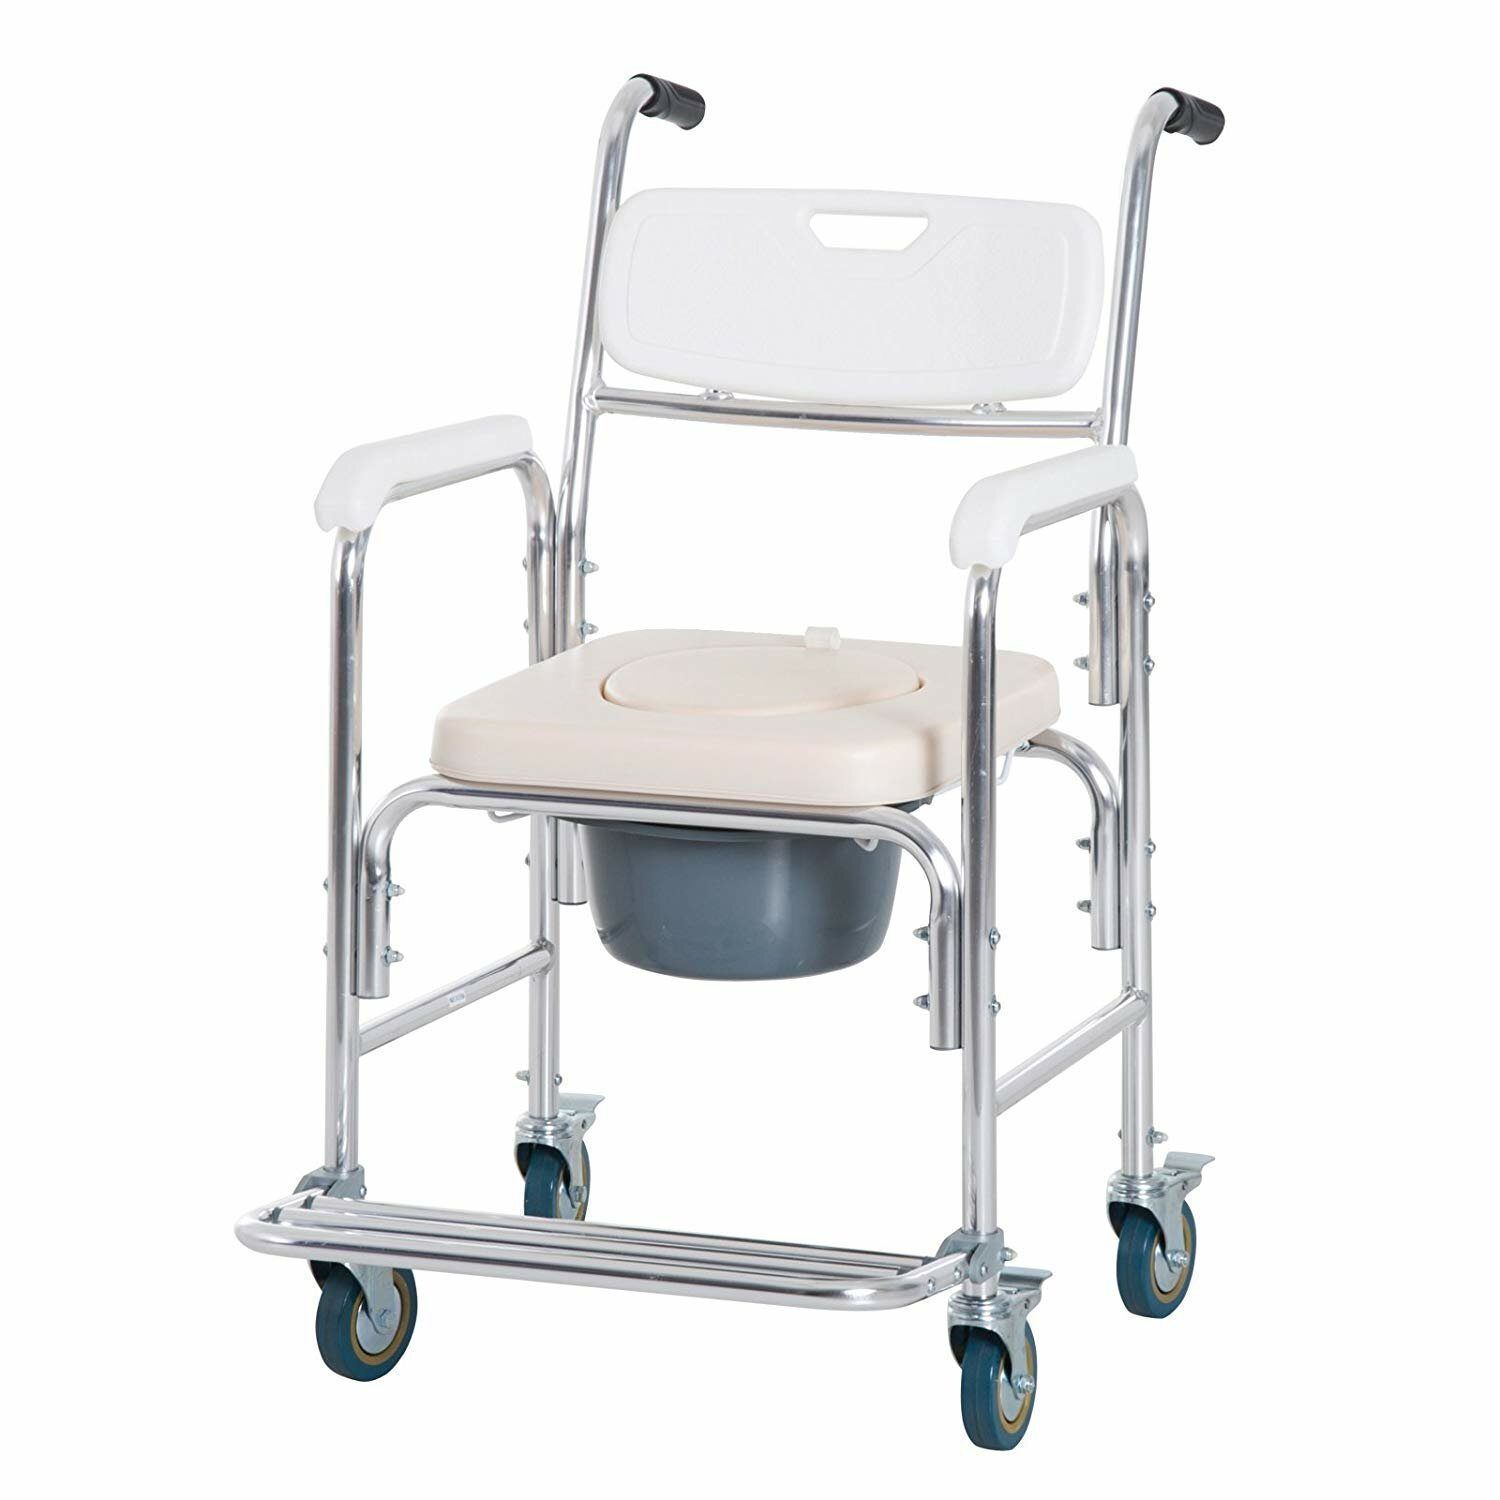 Mobility Durable Waterproof Shower Chair